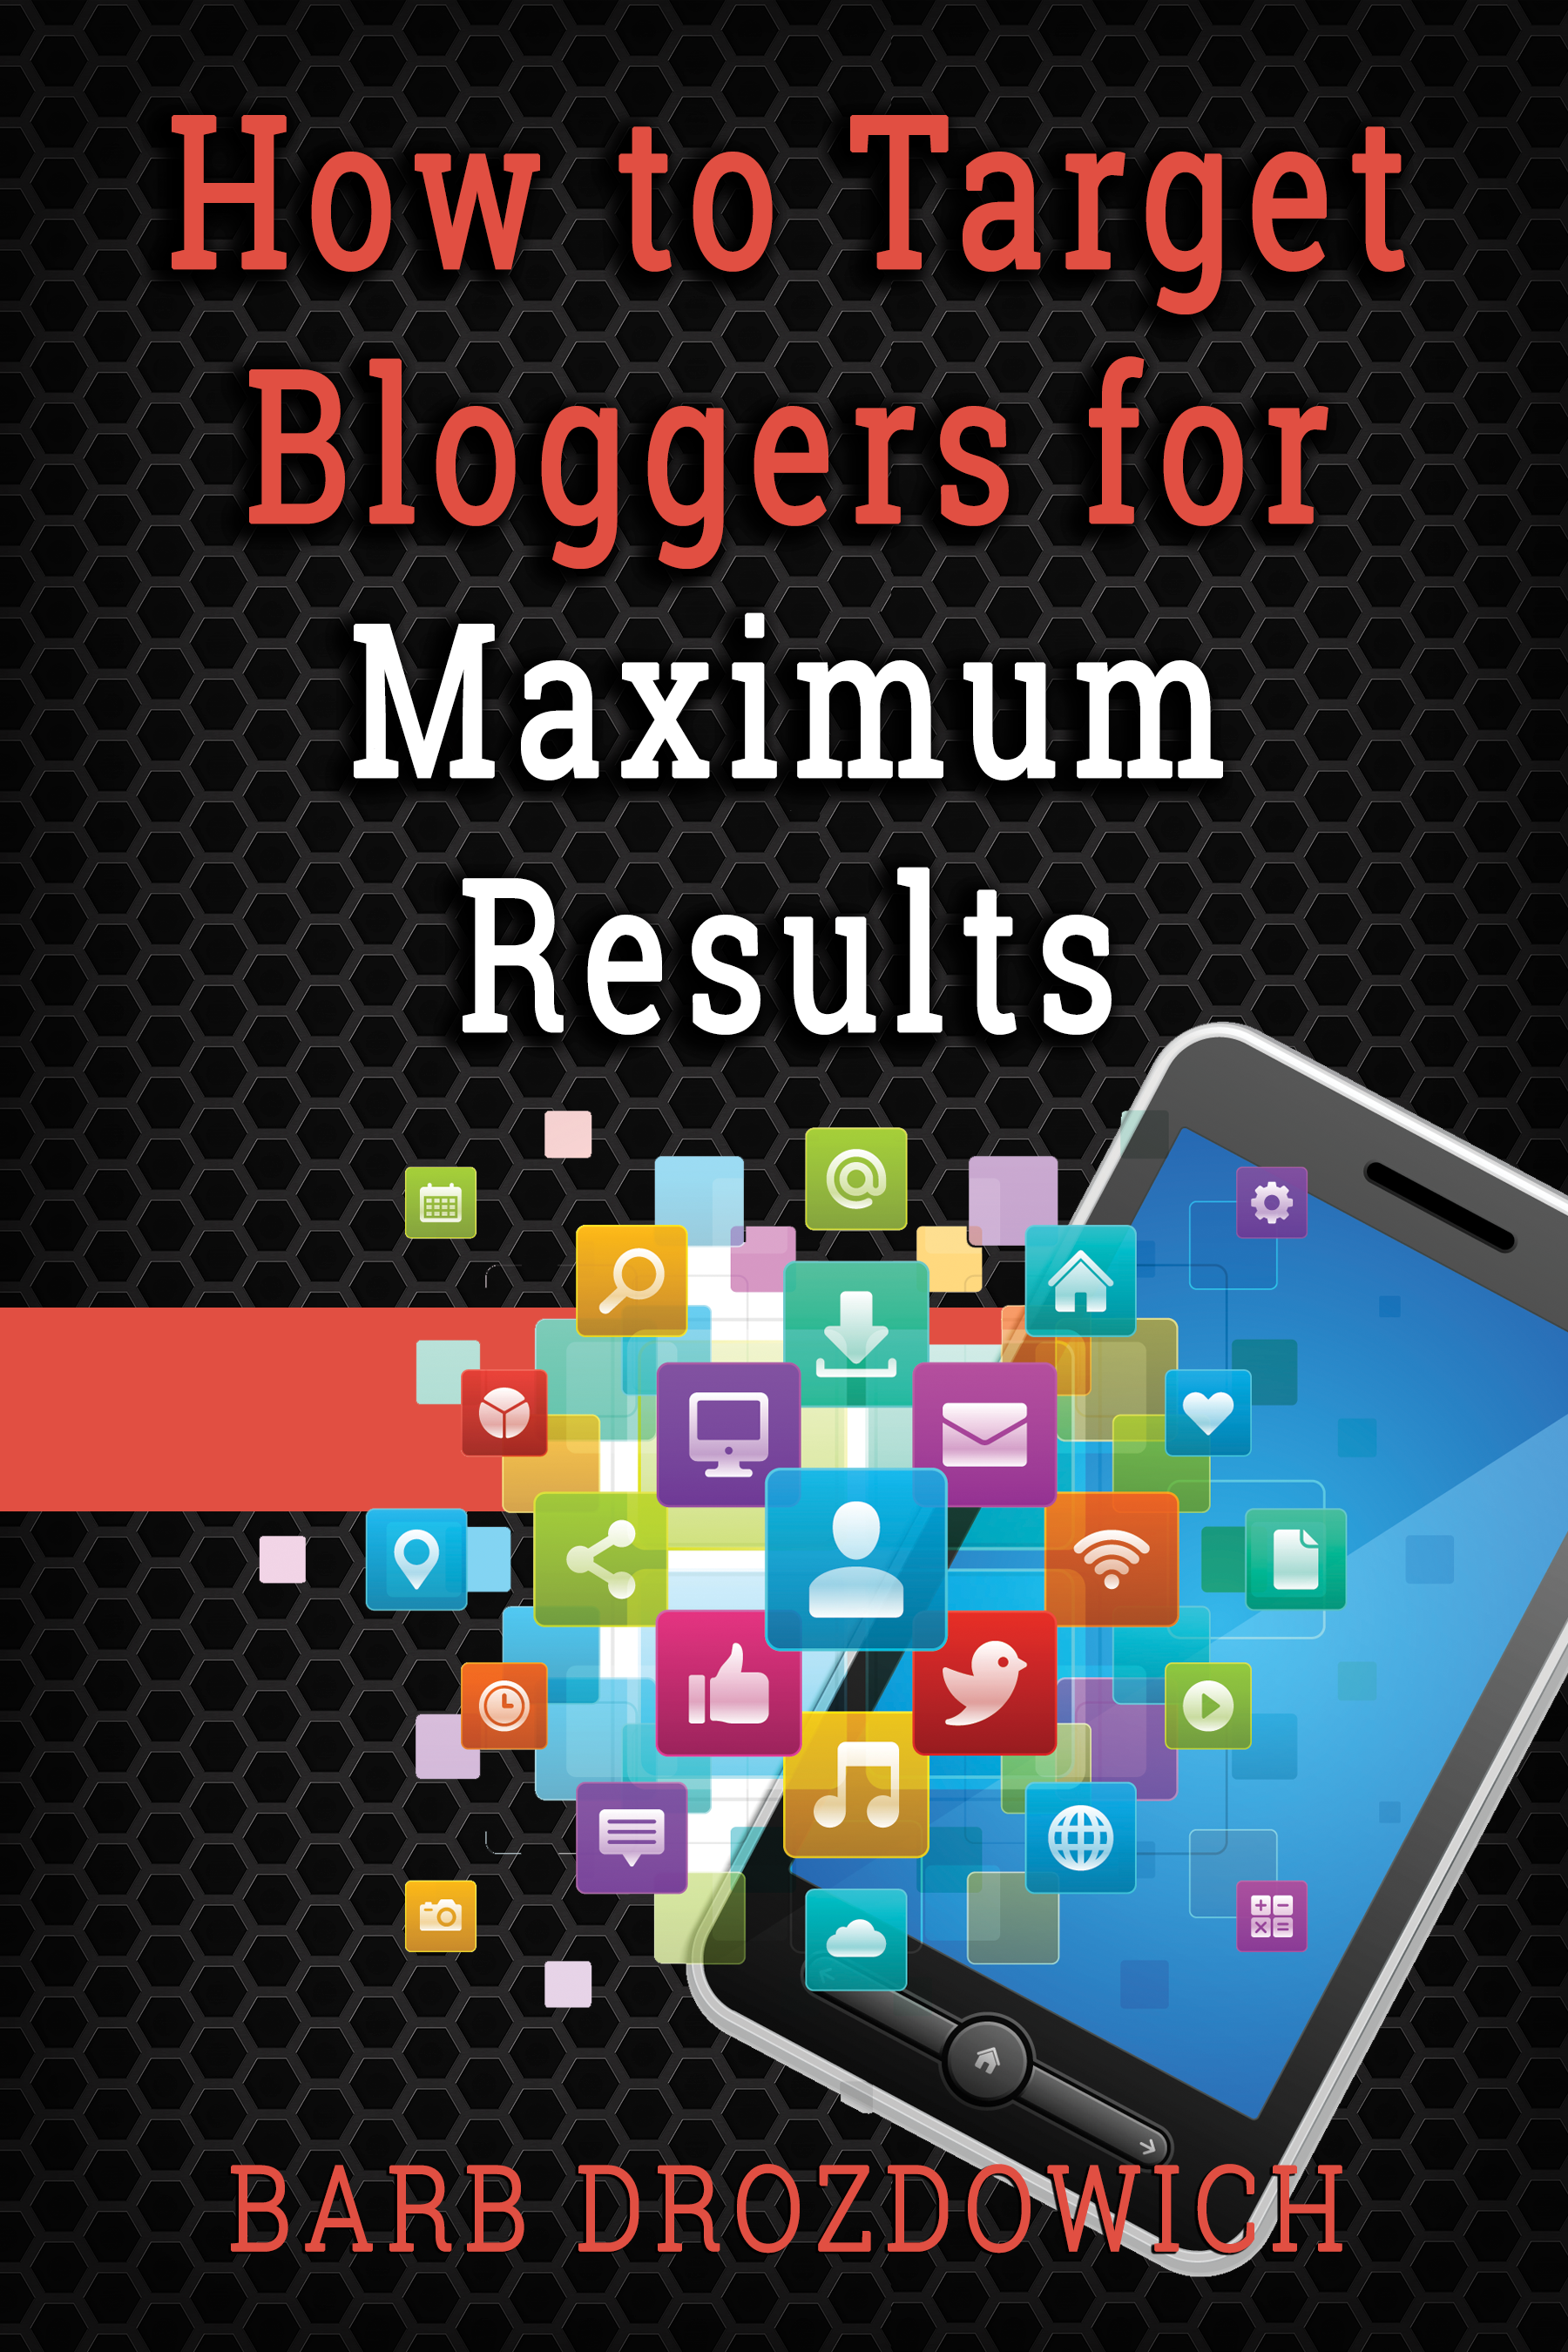 How to Target bloggers (1)